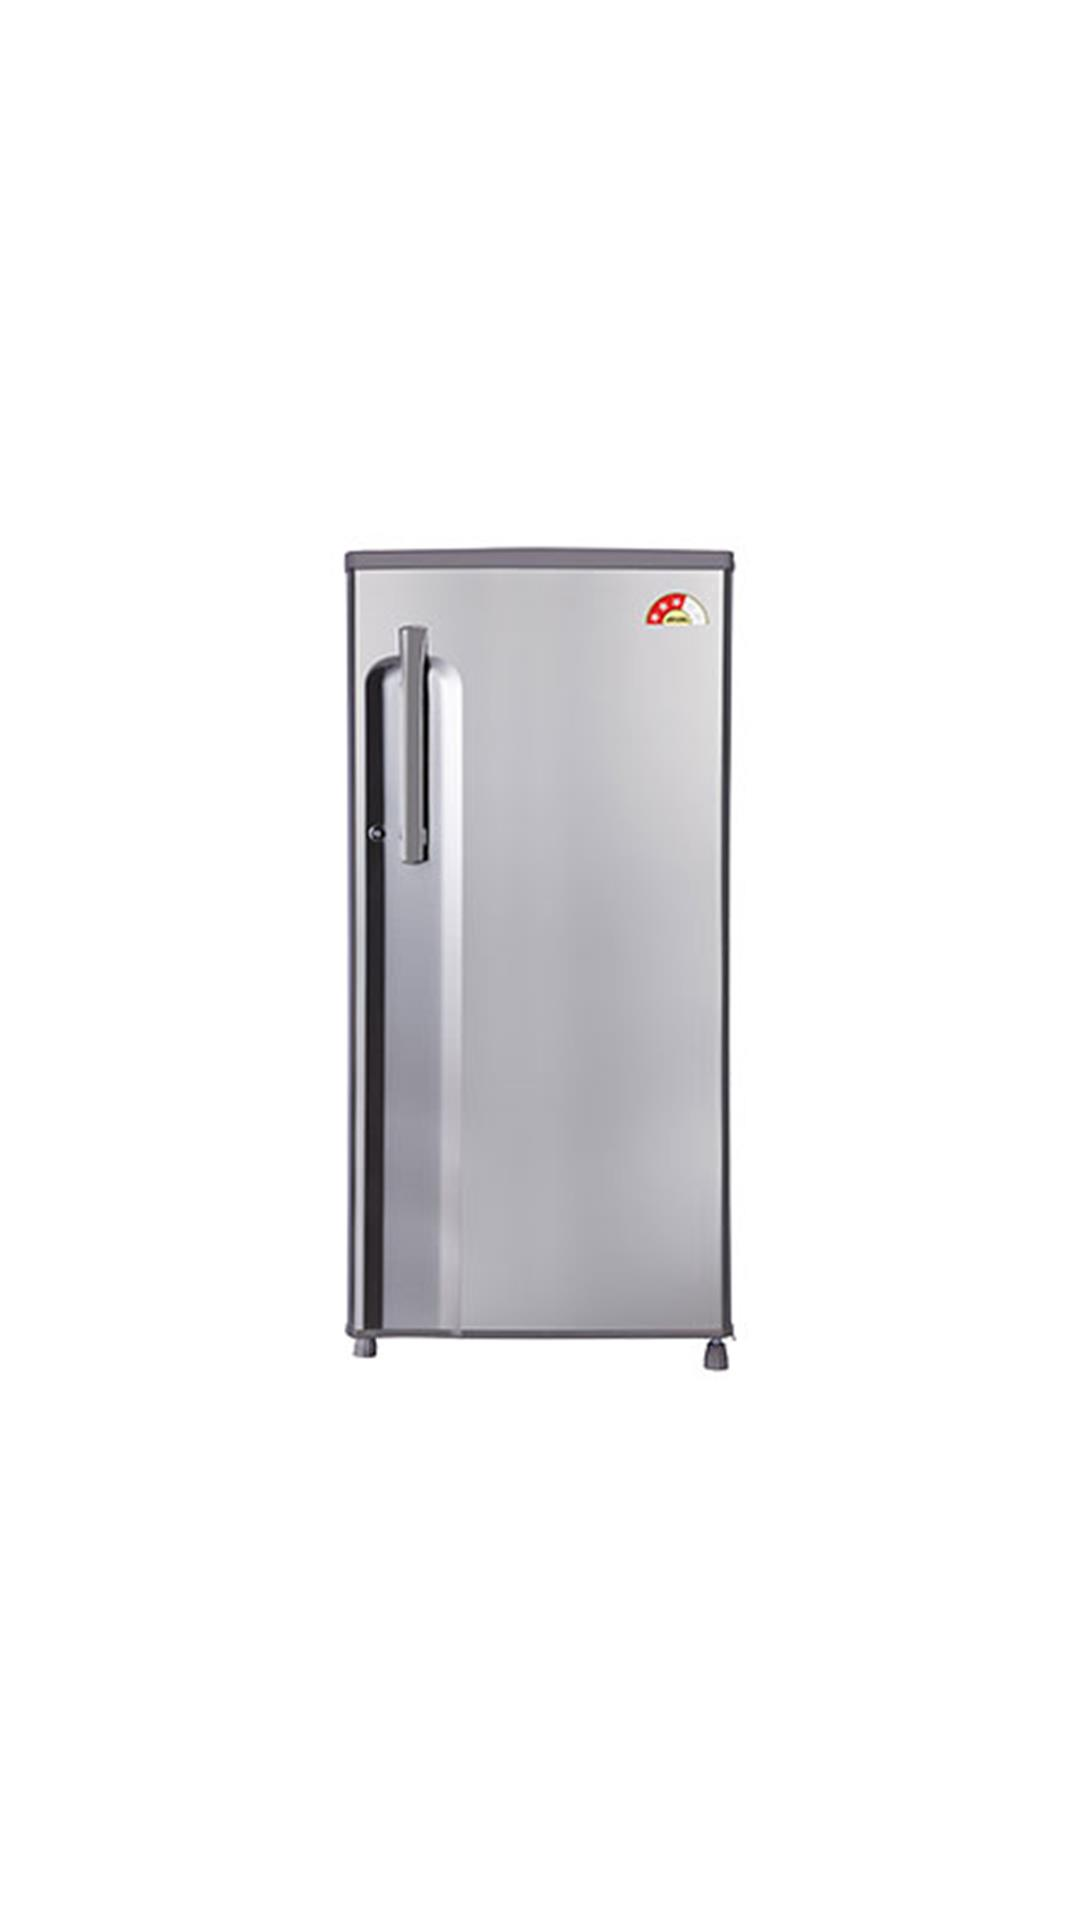 LG 188 L Single Door Refrigerator Shiny Steel (GL-B191KPZQ)